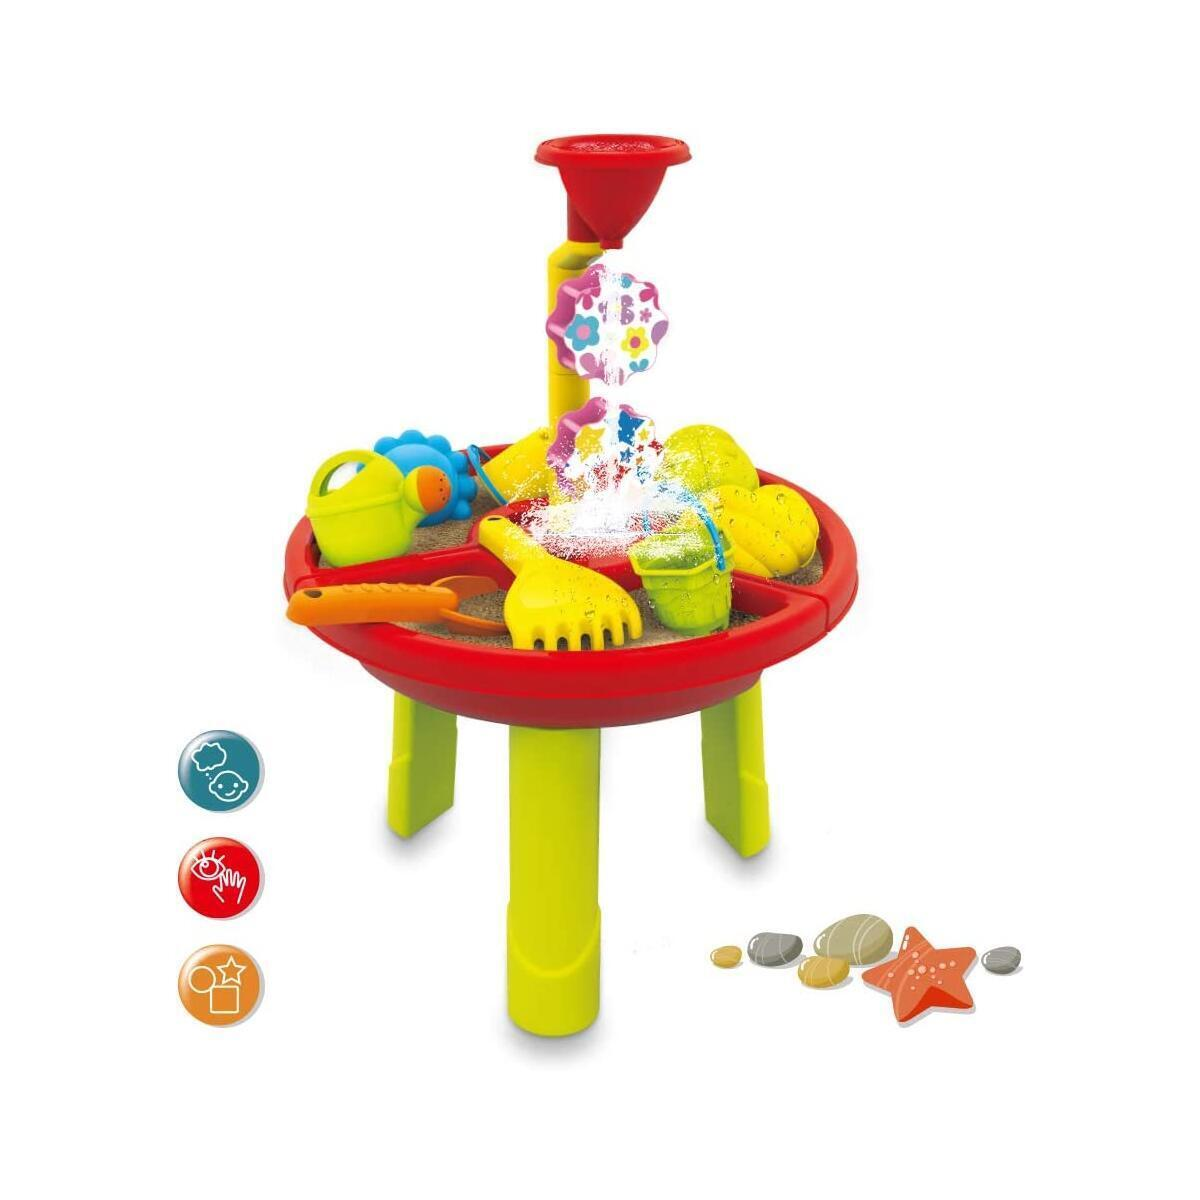 HANMUN Kids Sand and Water Table - Outdoor Indoor Beach Play Activity Table Sandbox with Cover and 17 Pcs Accessories for Kids, Toddlers and Children